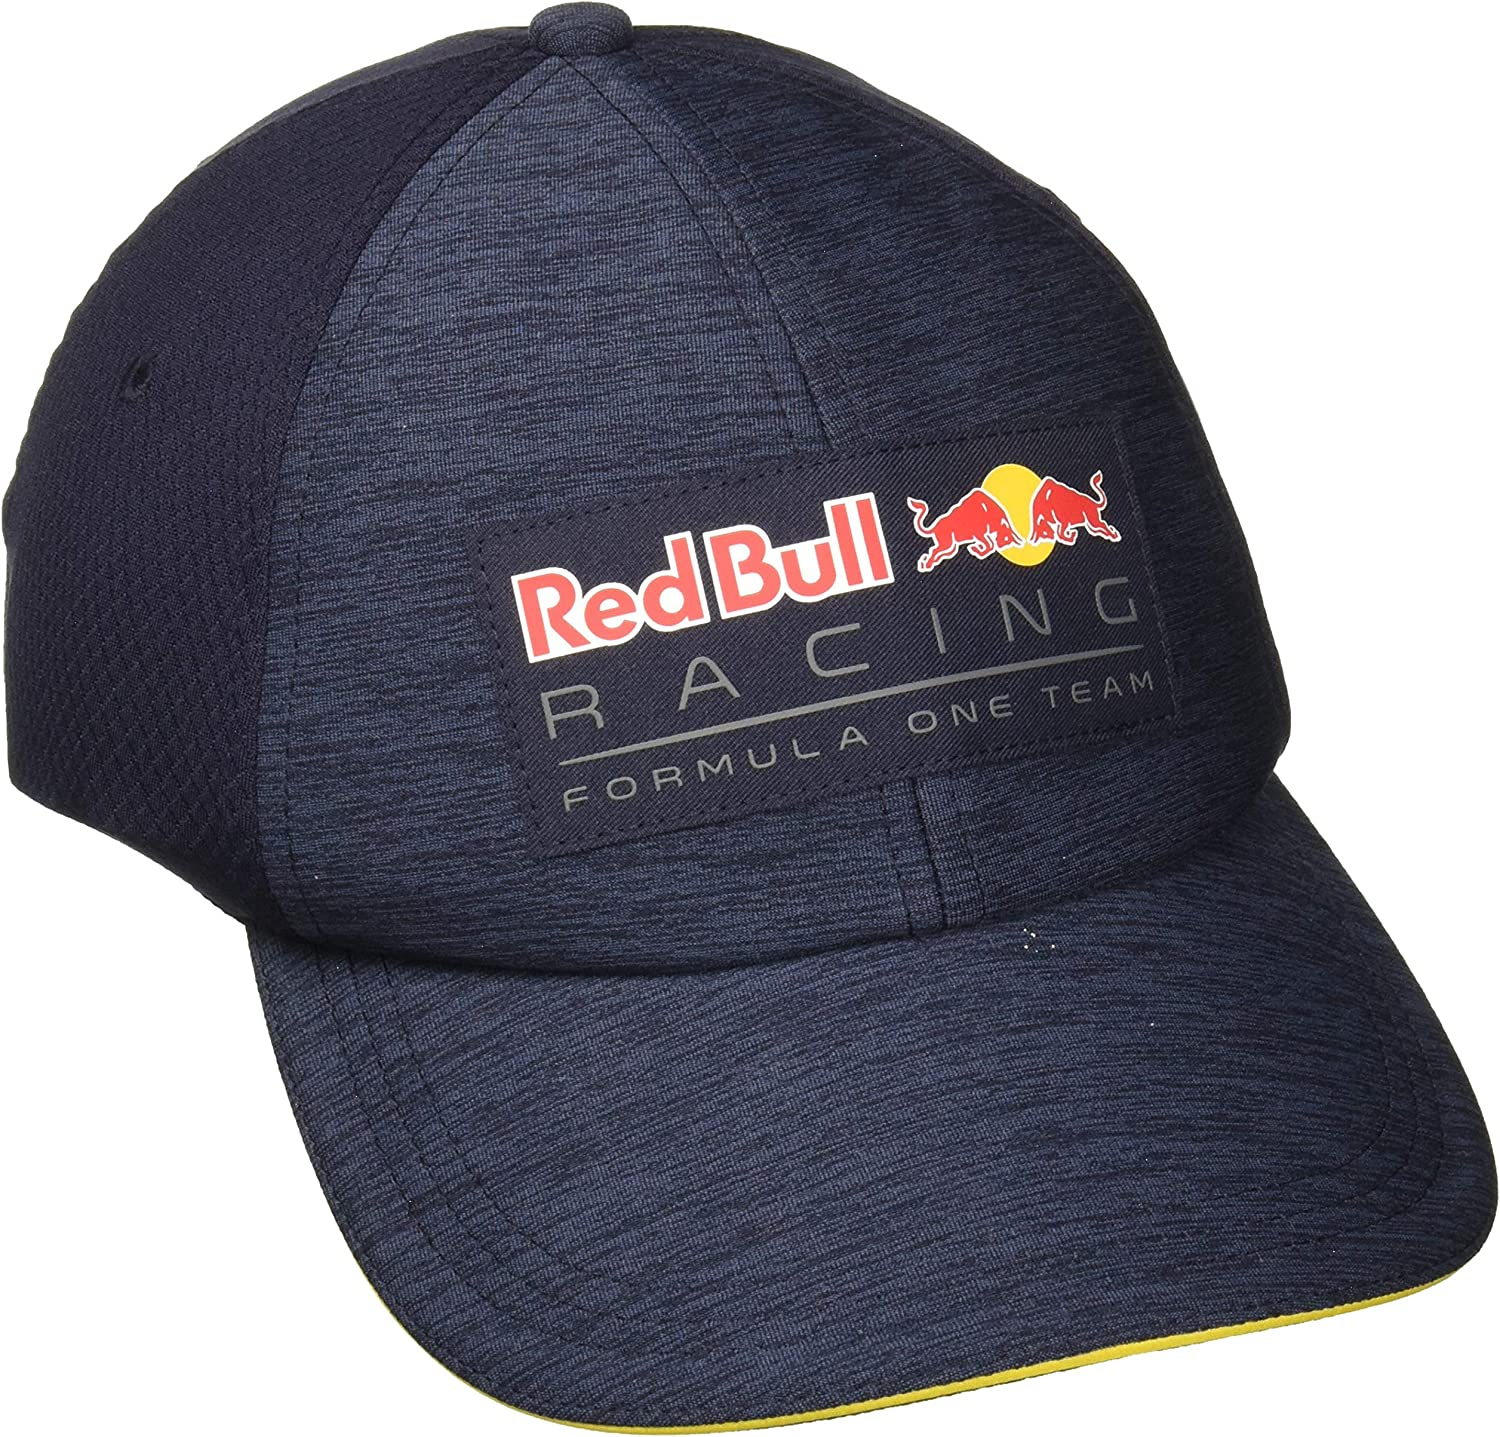 Amazon.com : PUMA Red Bull Racing Lifestyle Navy Hat : Clothing